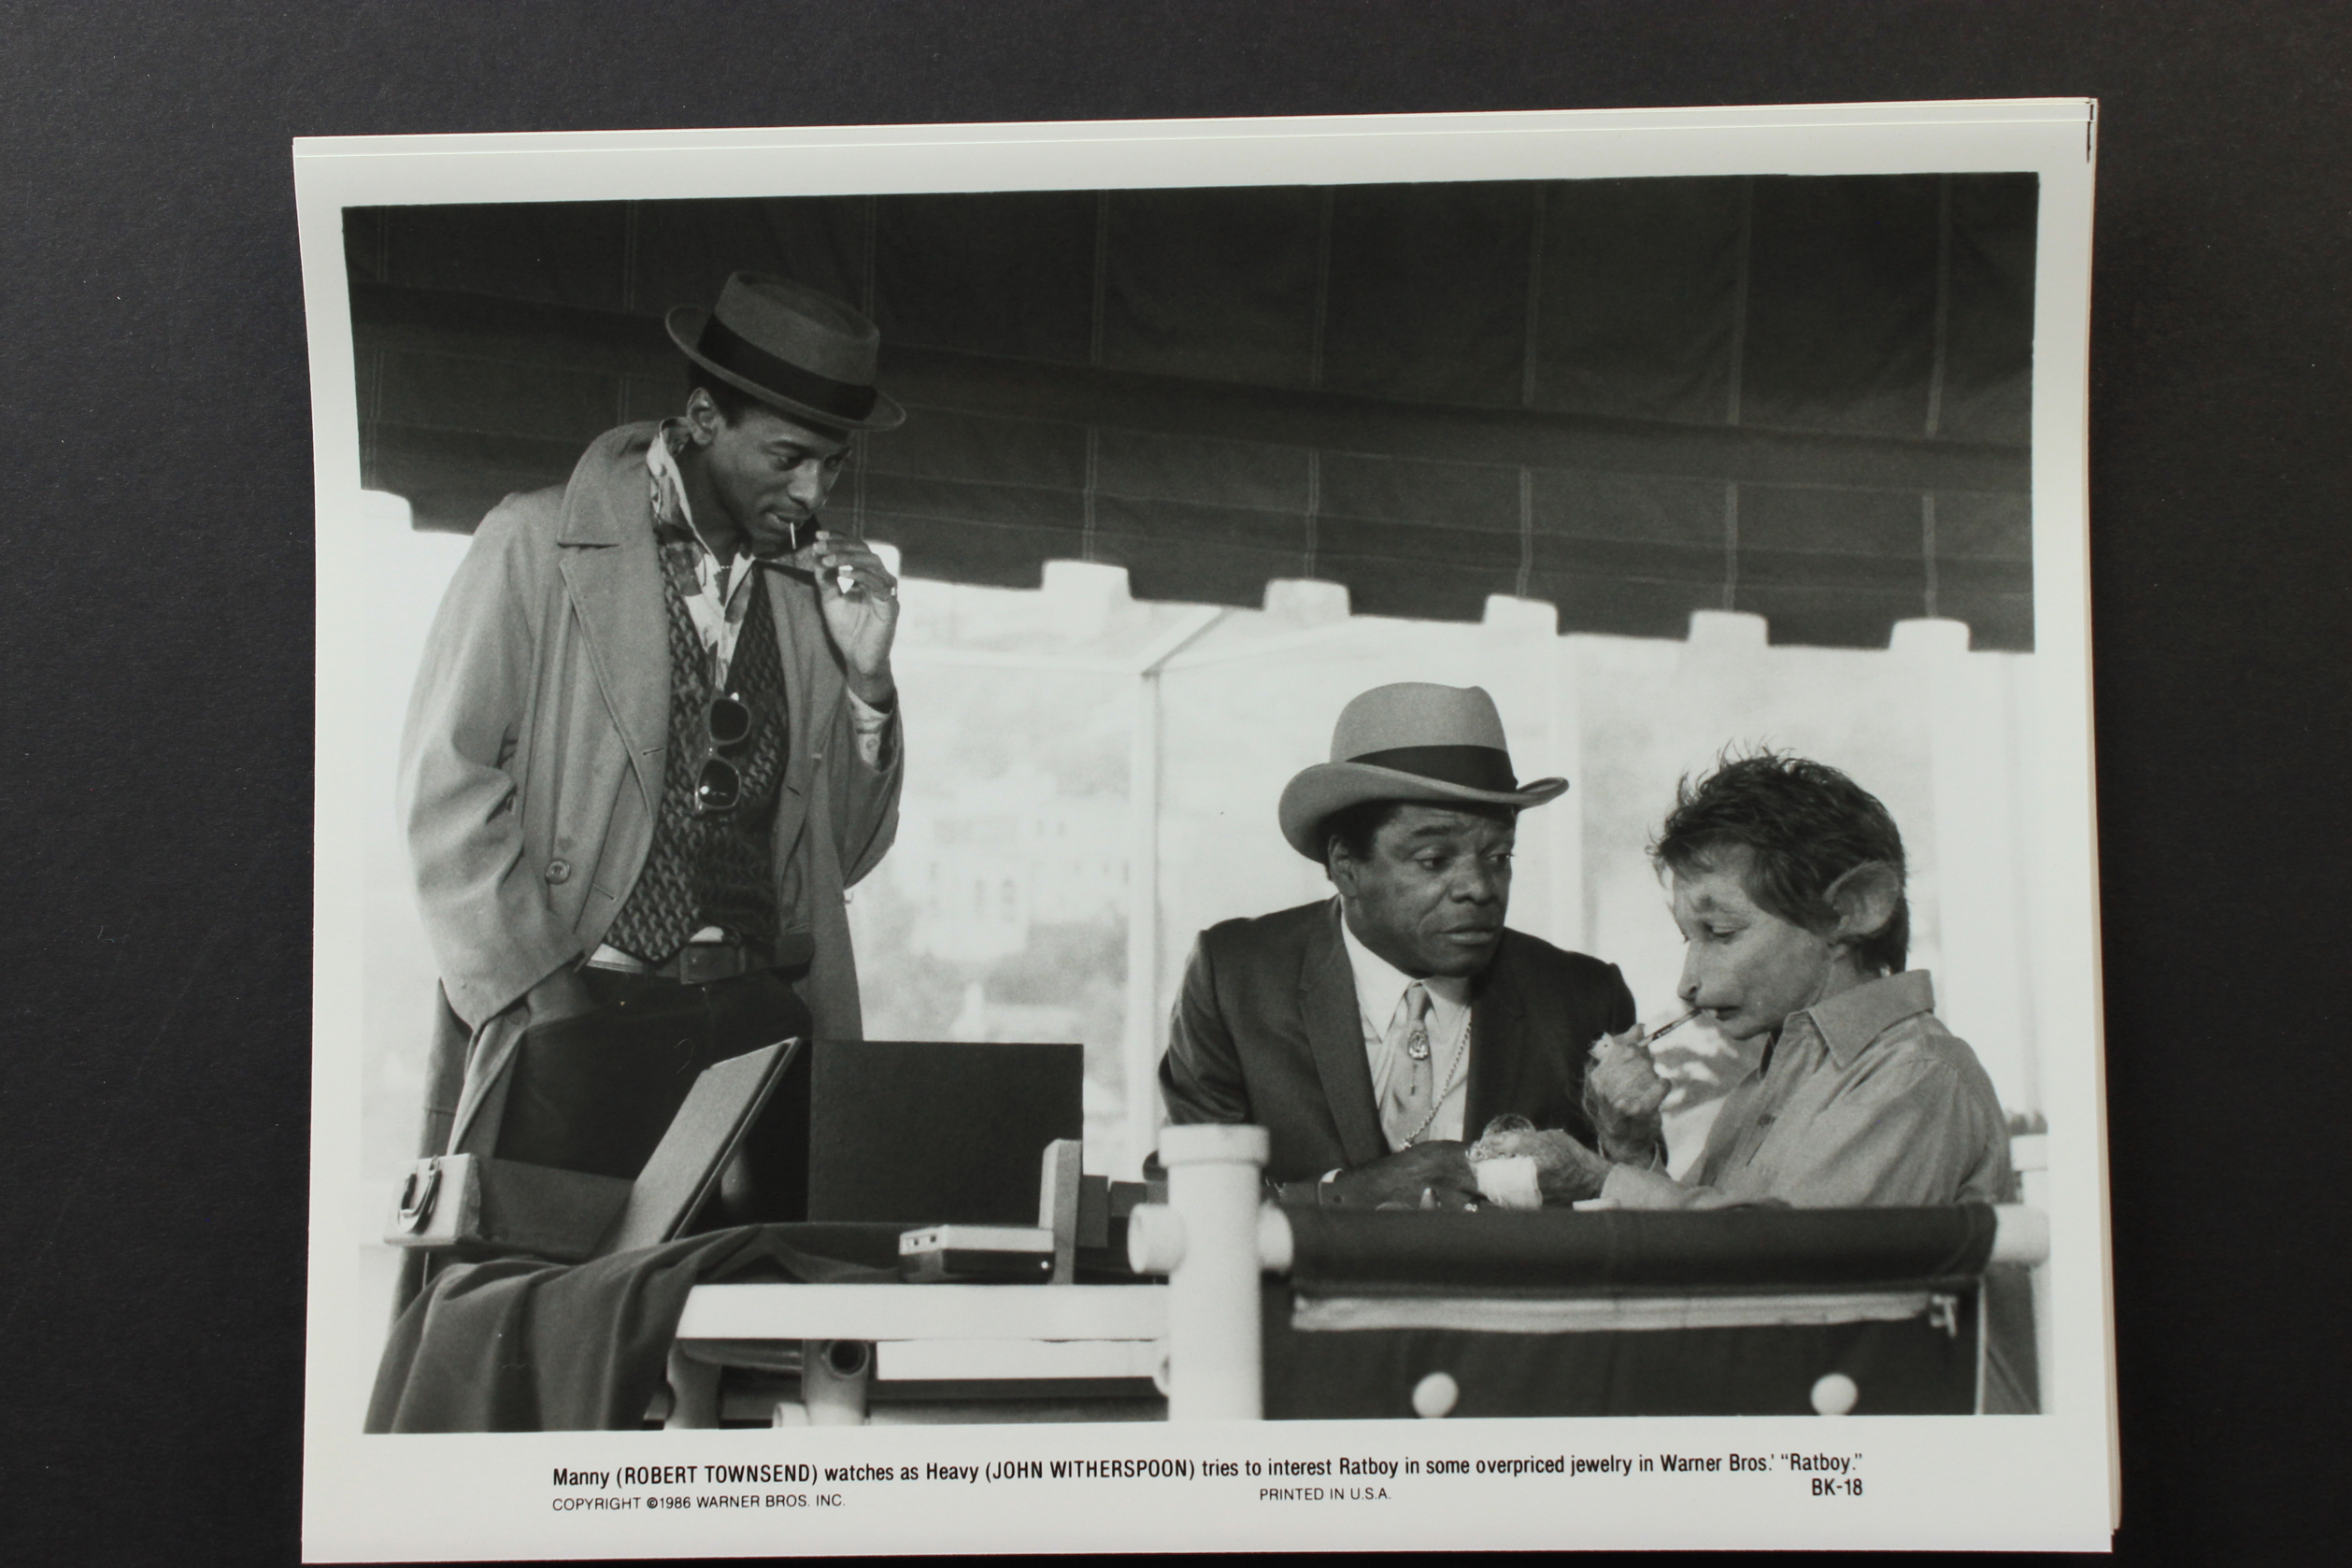 Sharon Baird, Robert Townsend, and John Witherspoon in Ratboy (1986)